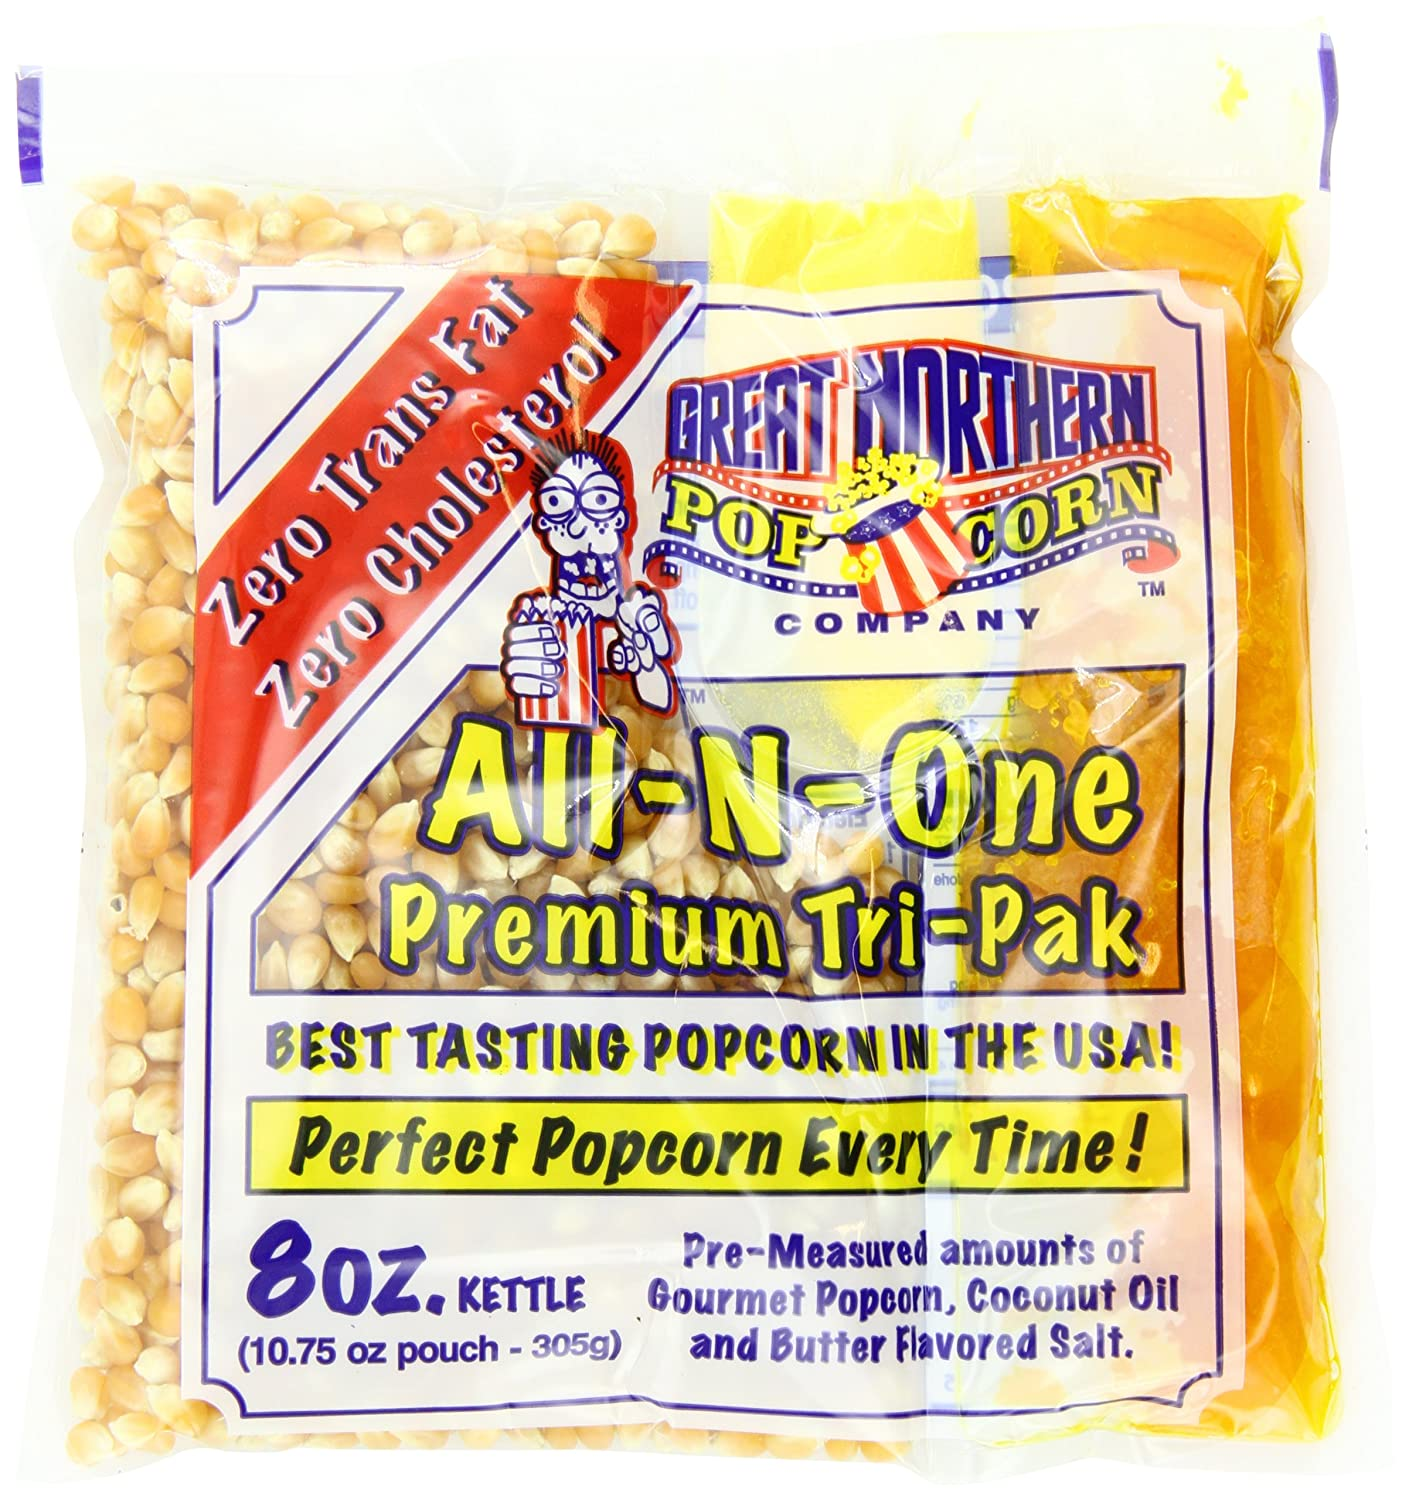 Great Northern Popcorn Premium 24 Pk – 8-ounce Popcorn Portion